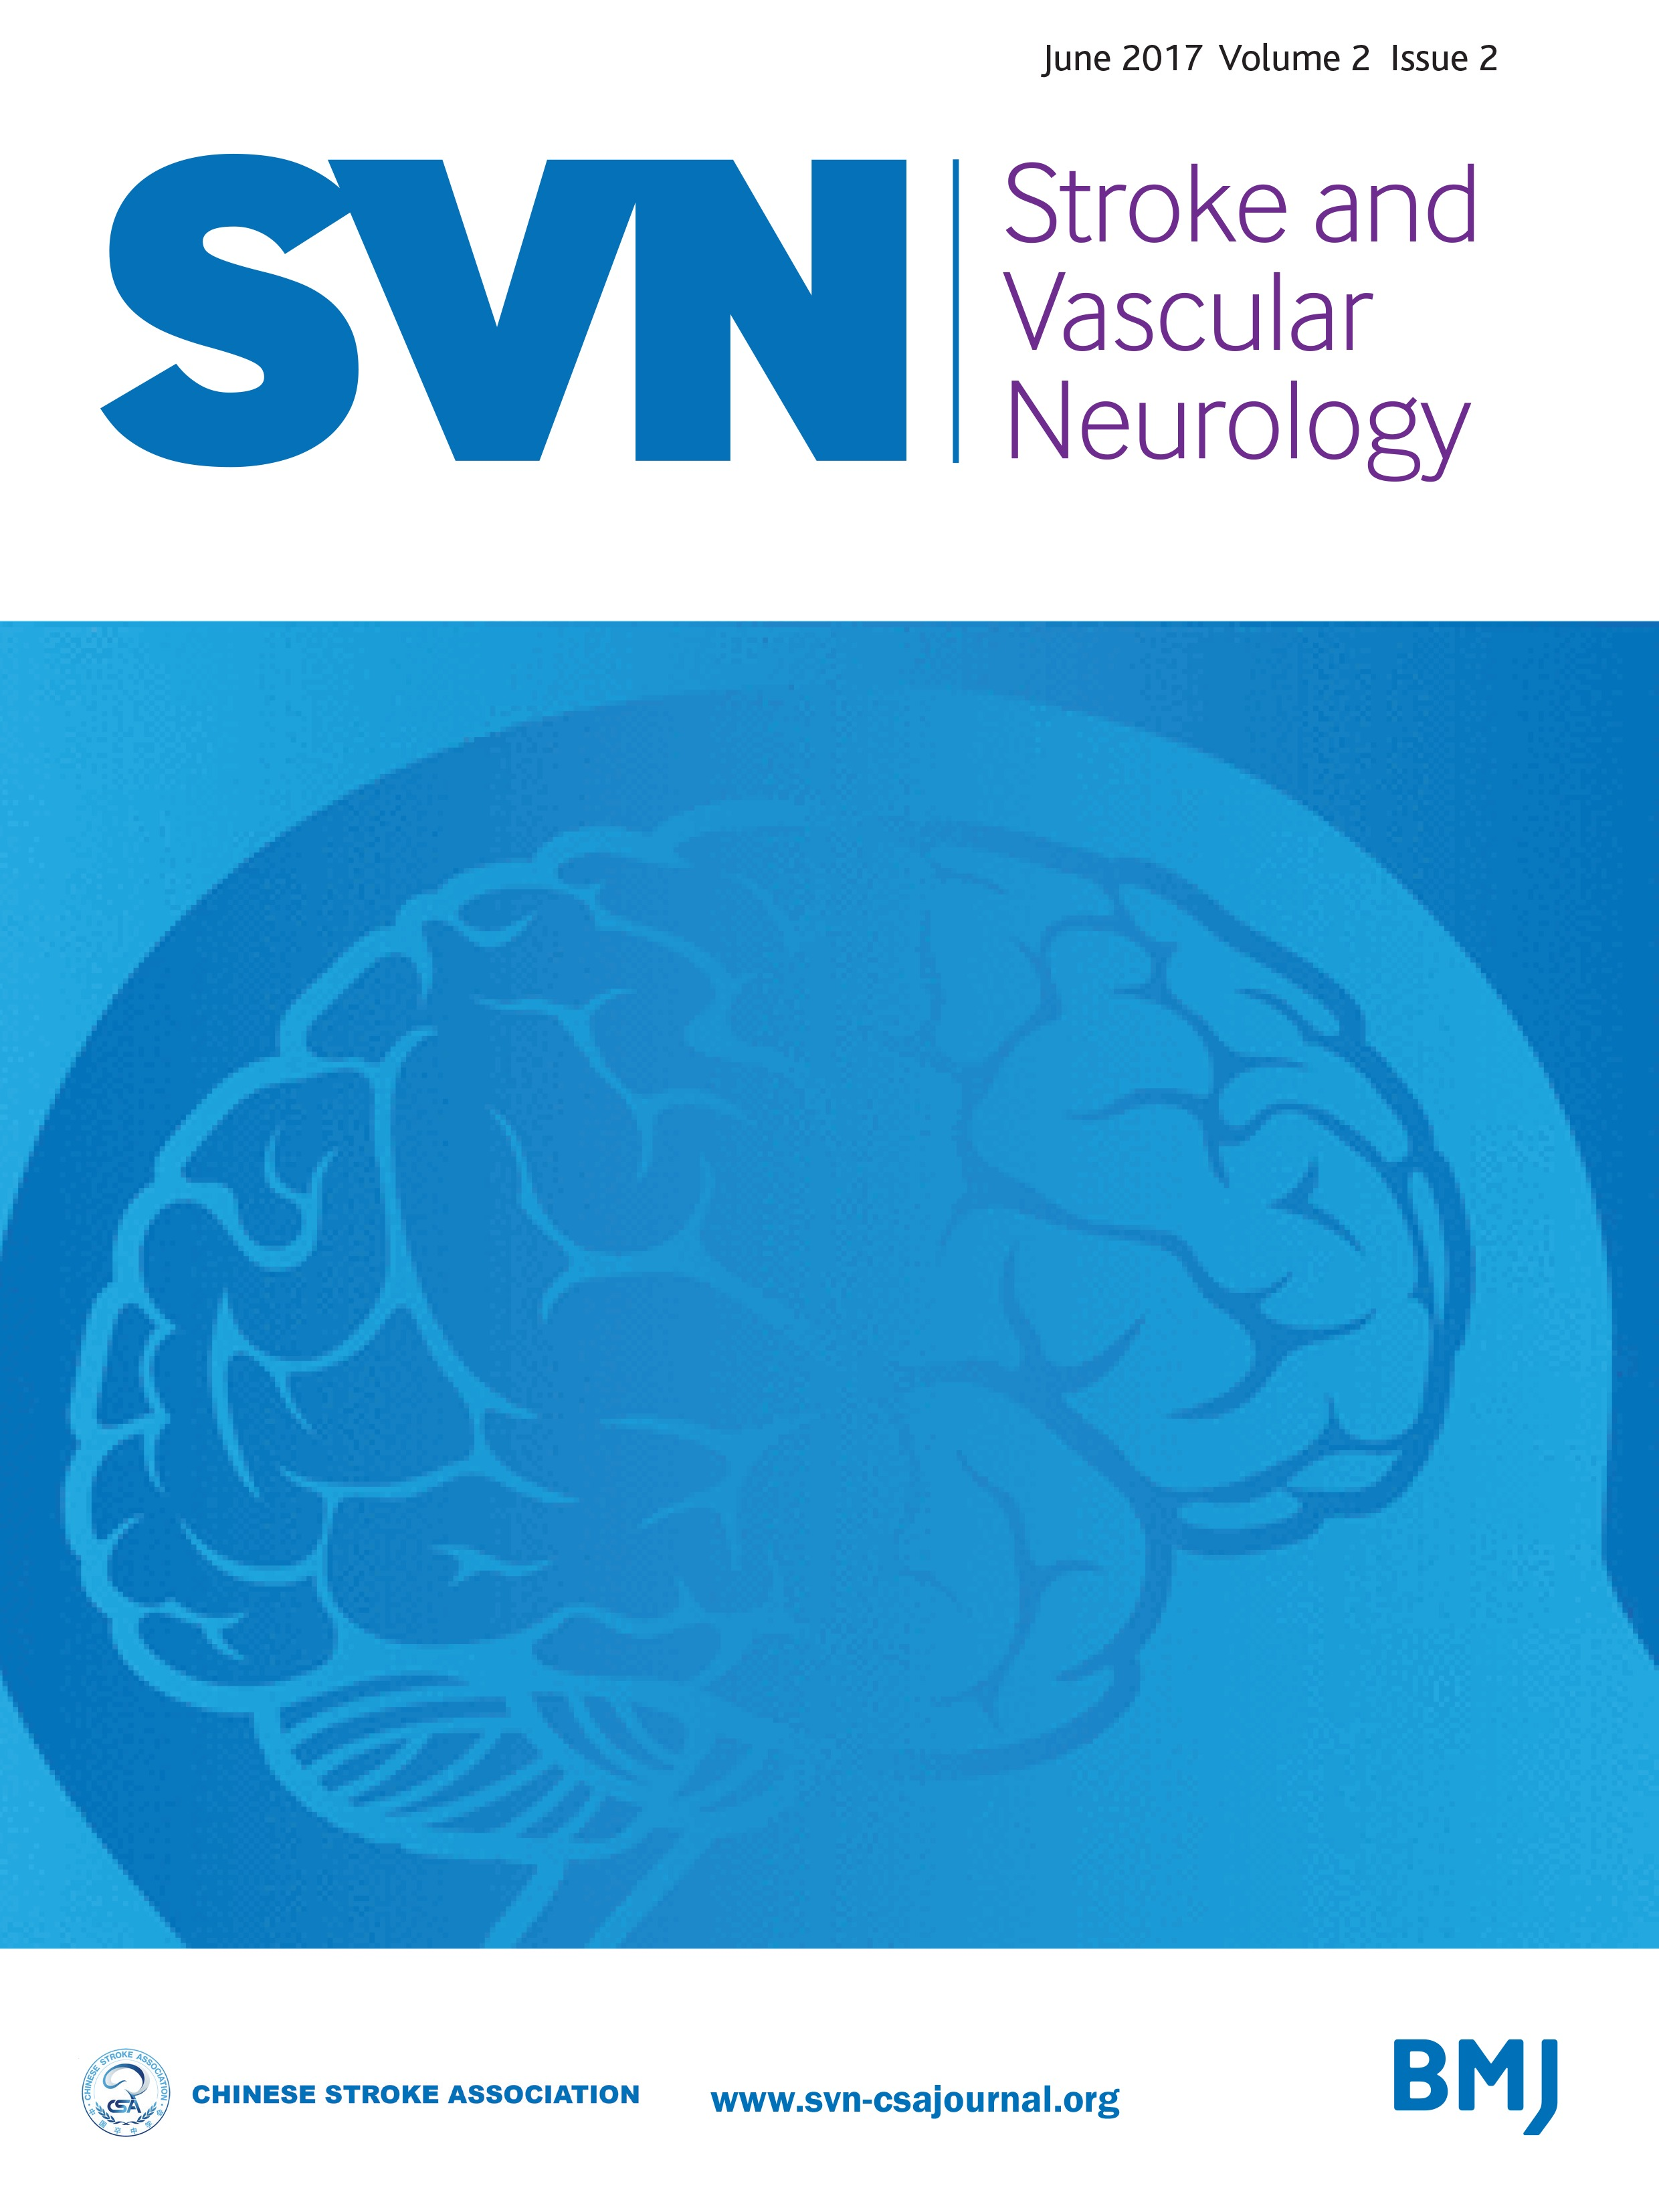 Update on cell therapy for stroke   Stroke and Vascular